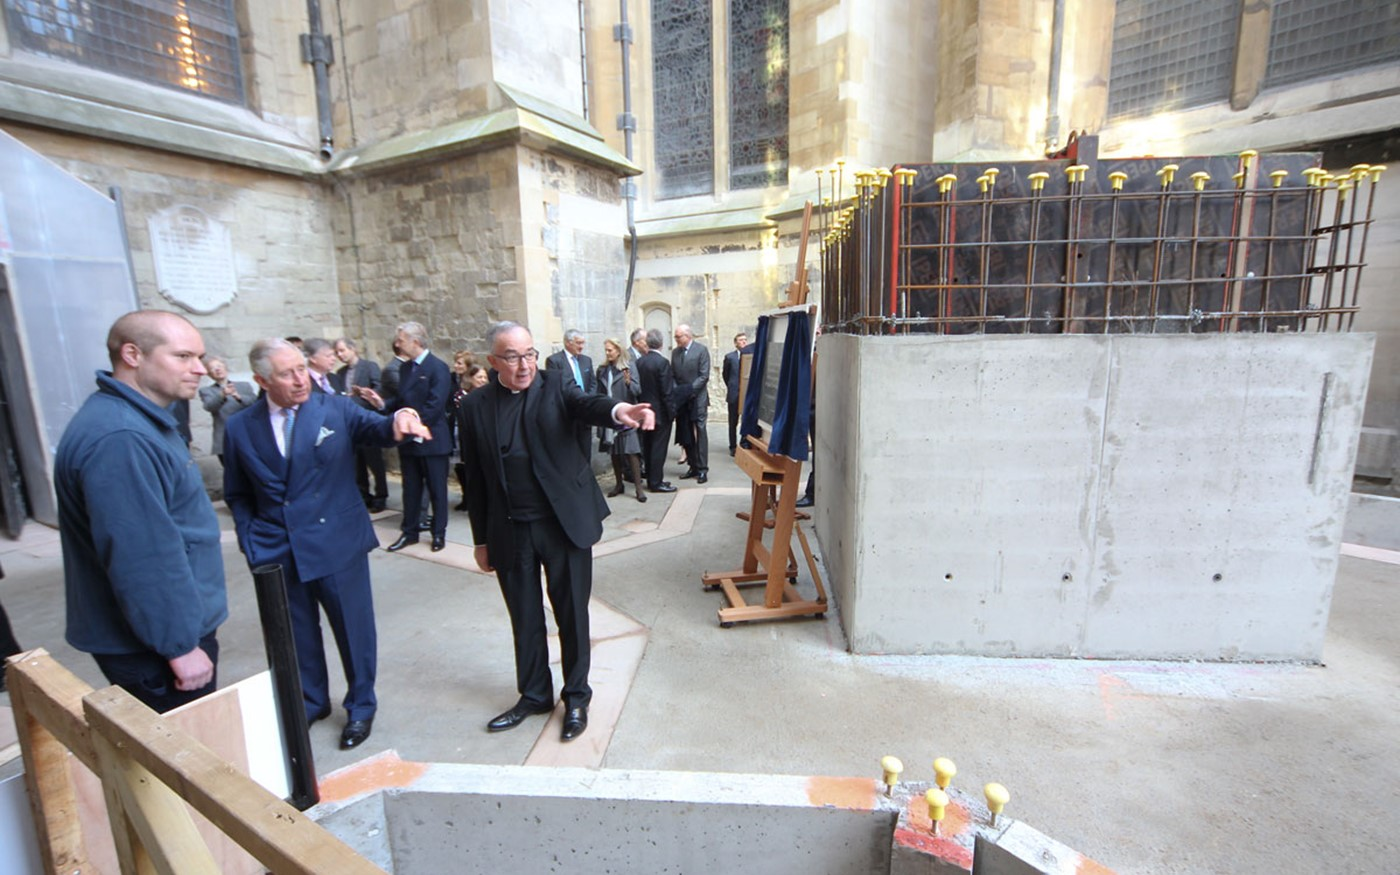 HRH The Prince of Wales views the foundations for the new tower